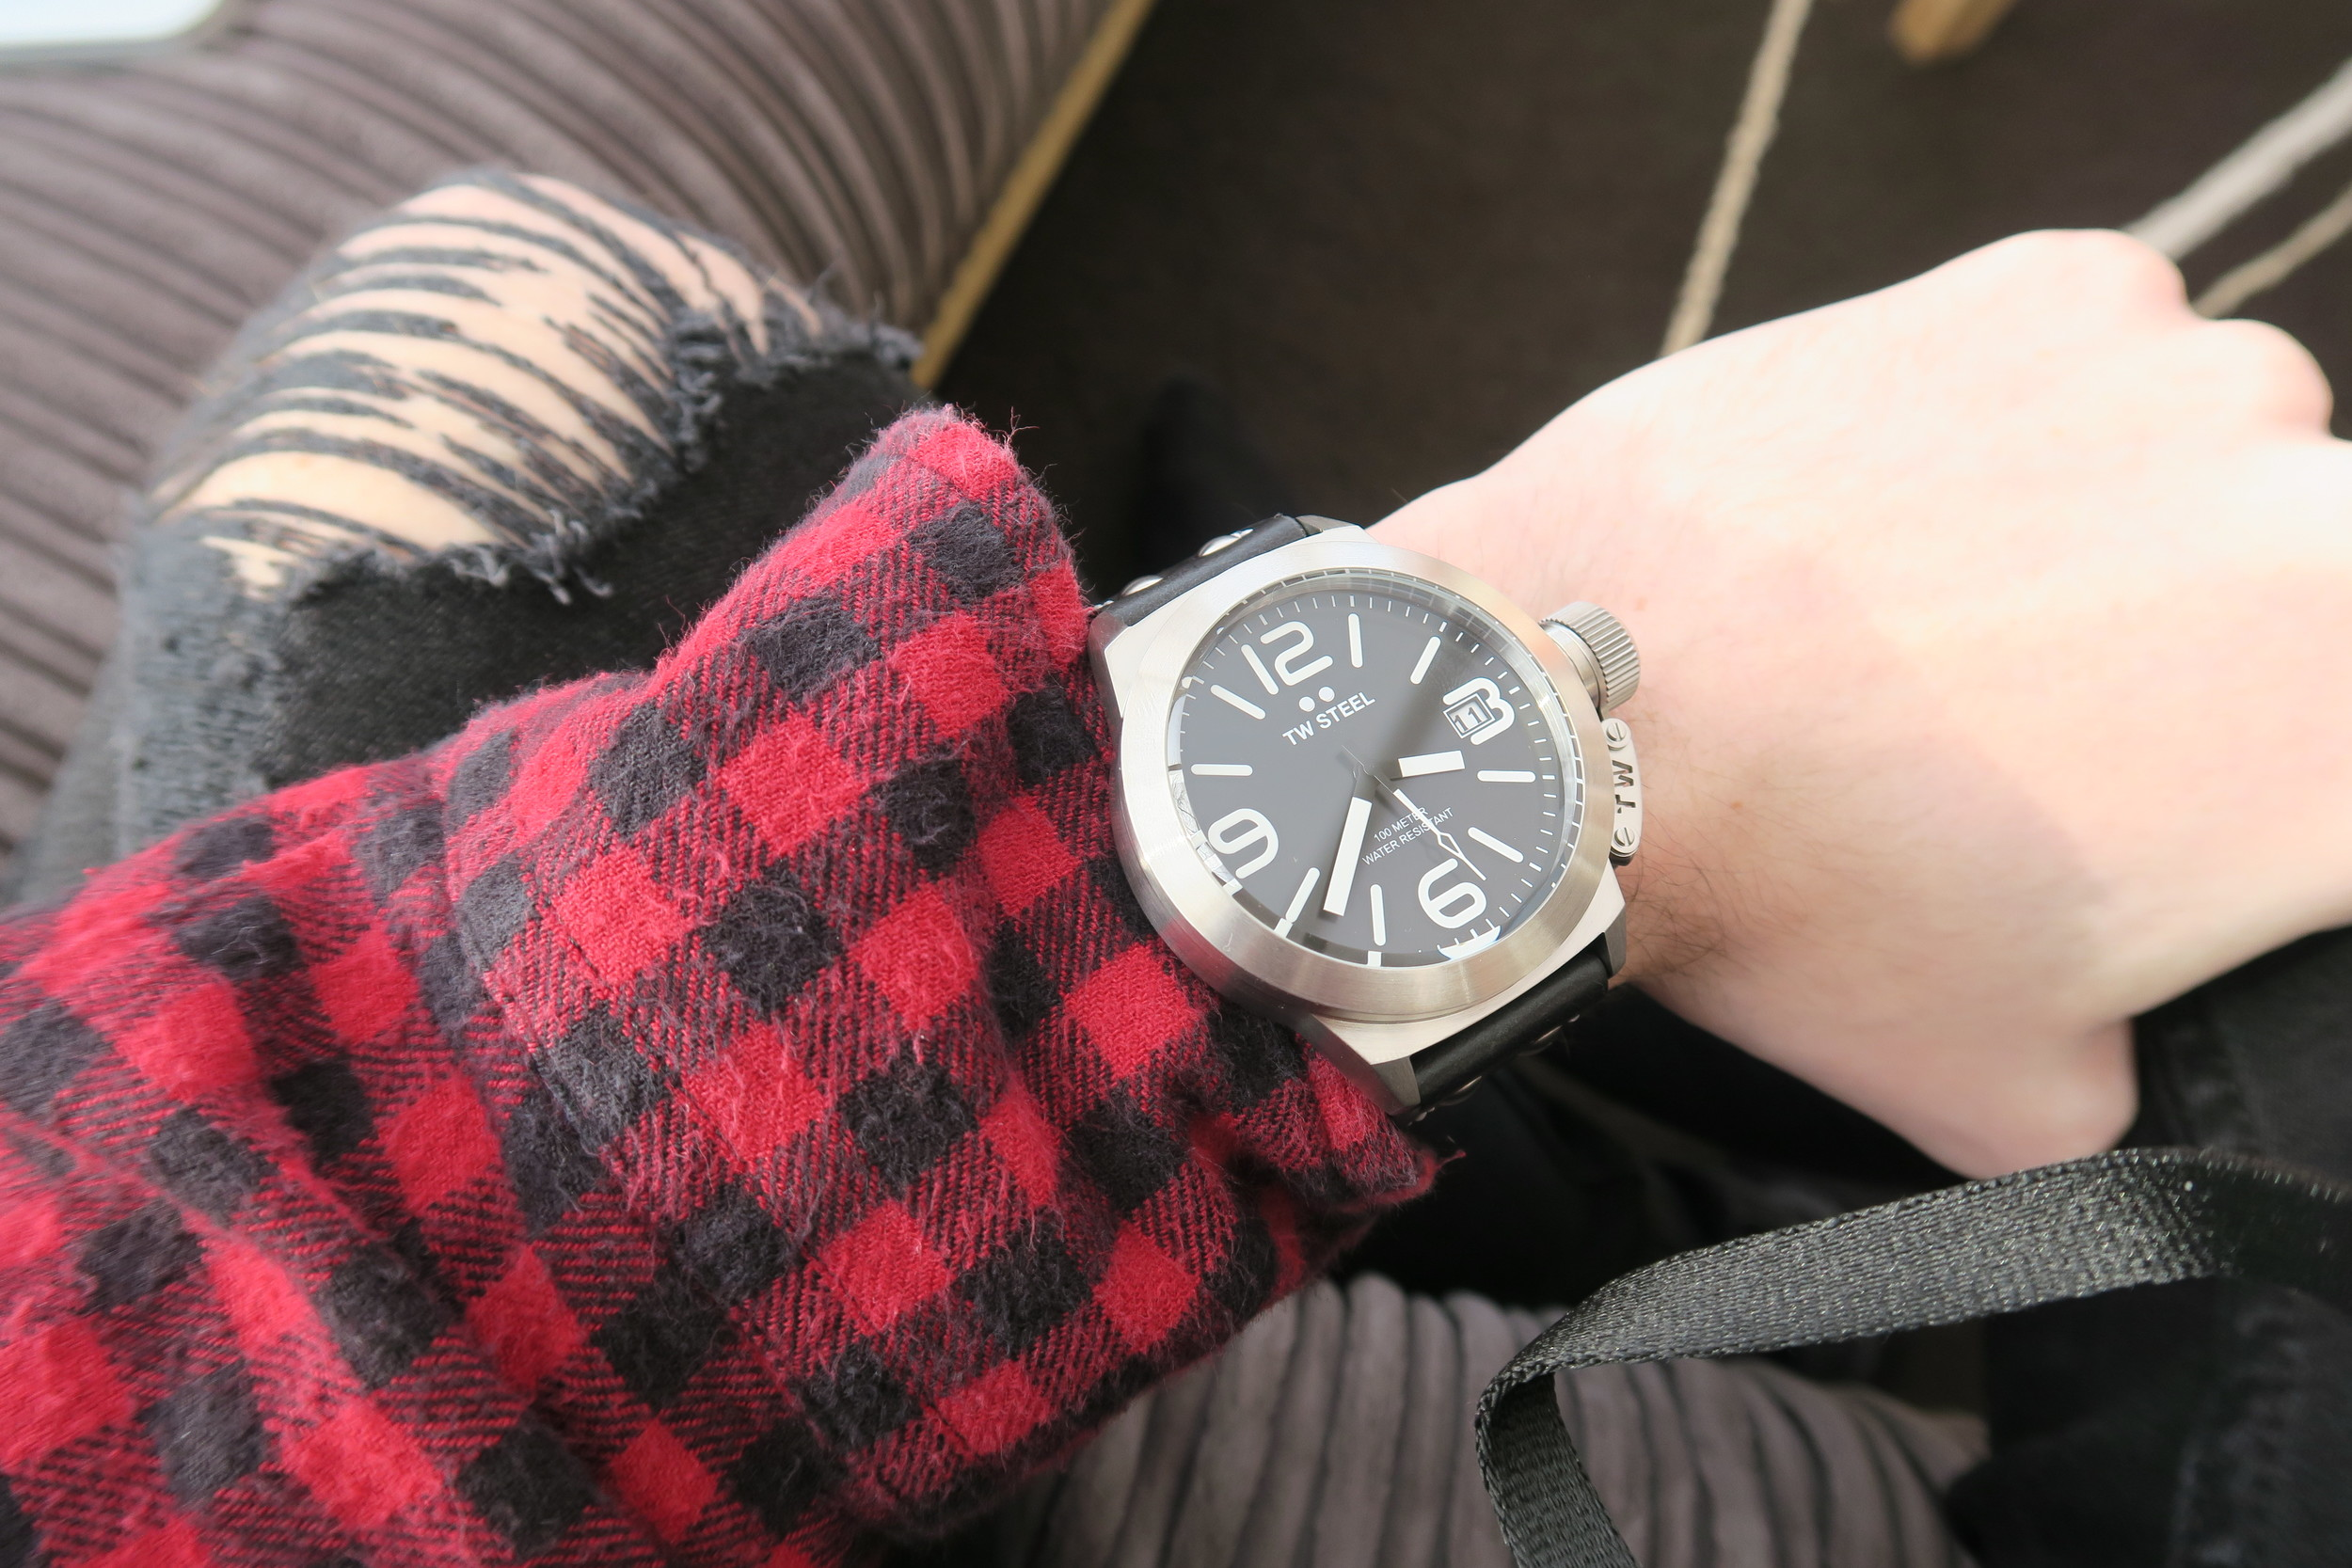 TW Steel Men's Watch | Sam Squire uk male fashion blogger